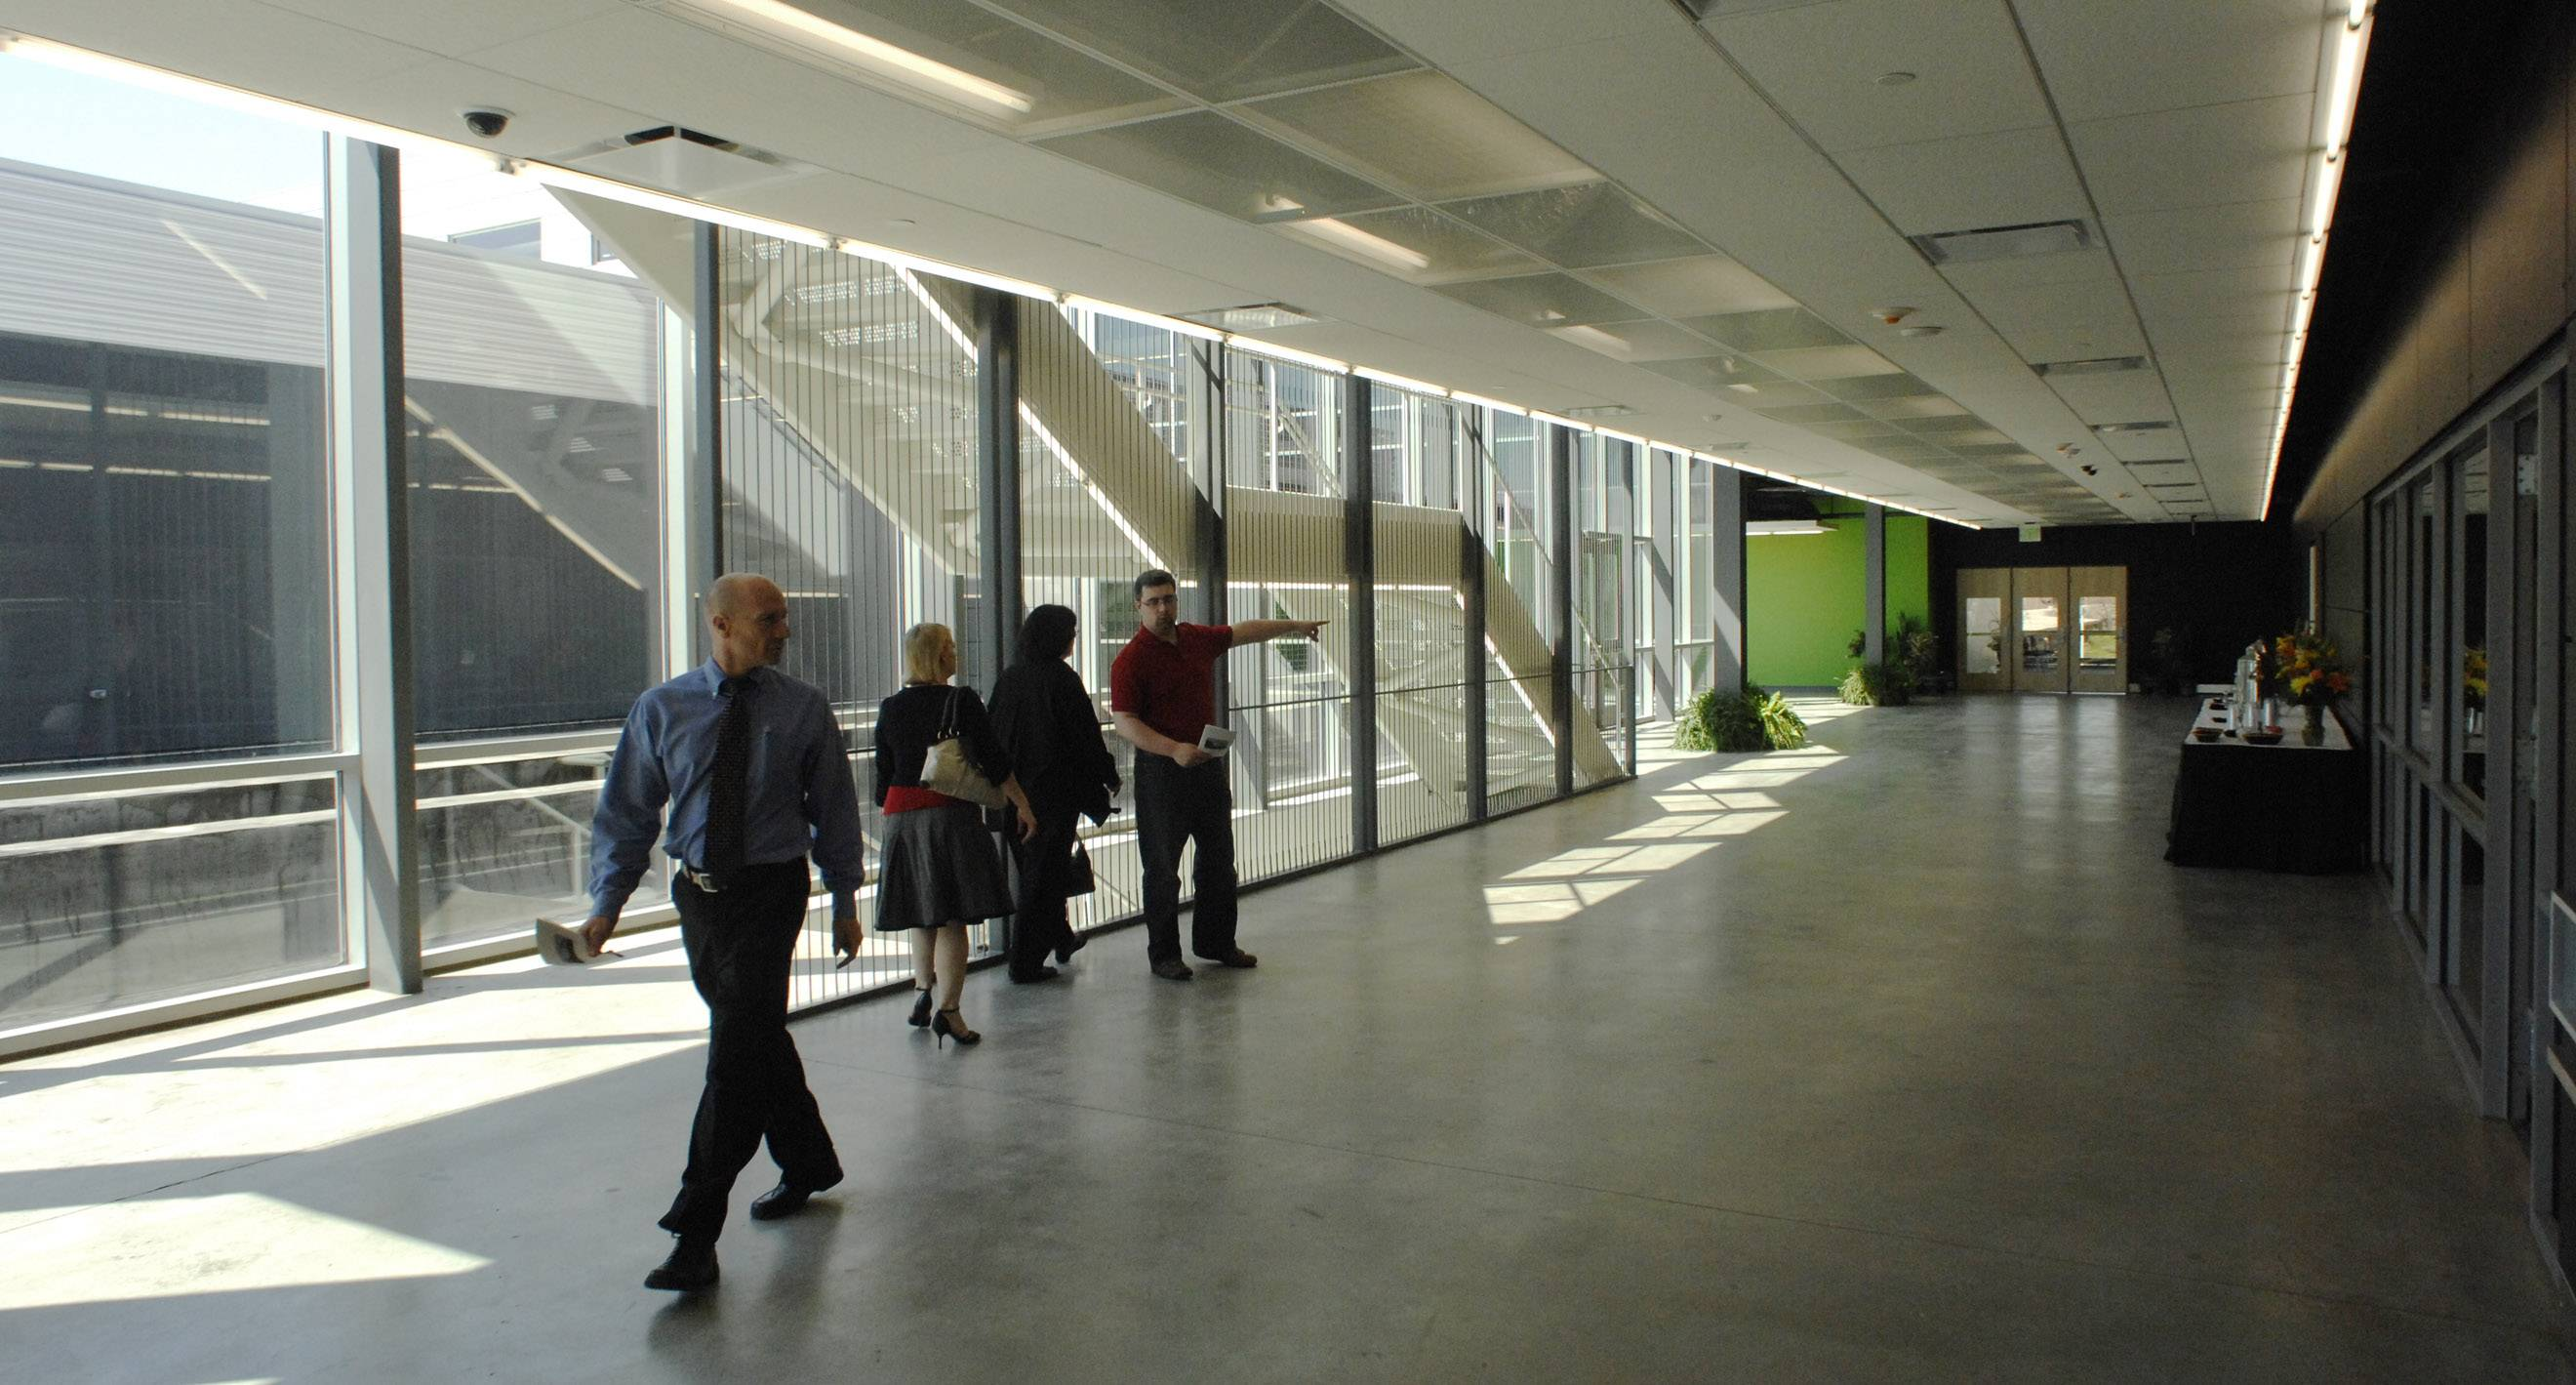 Tuition at College of DuPage is scheduled to increase by $4 per credit hour in the fall.